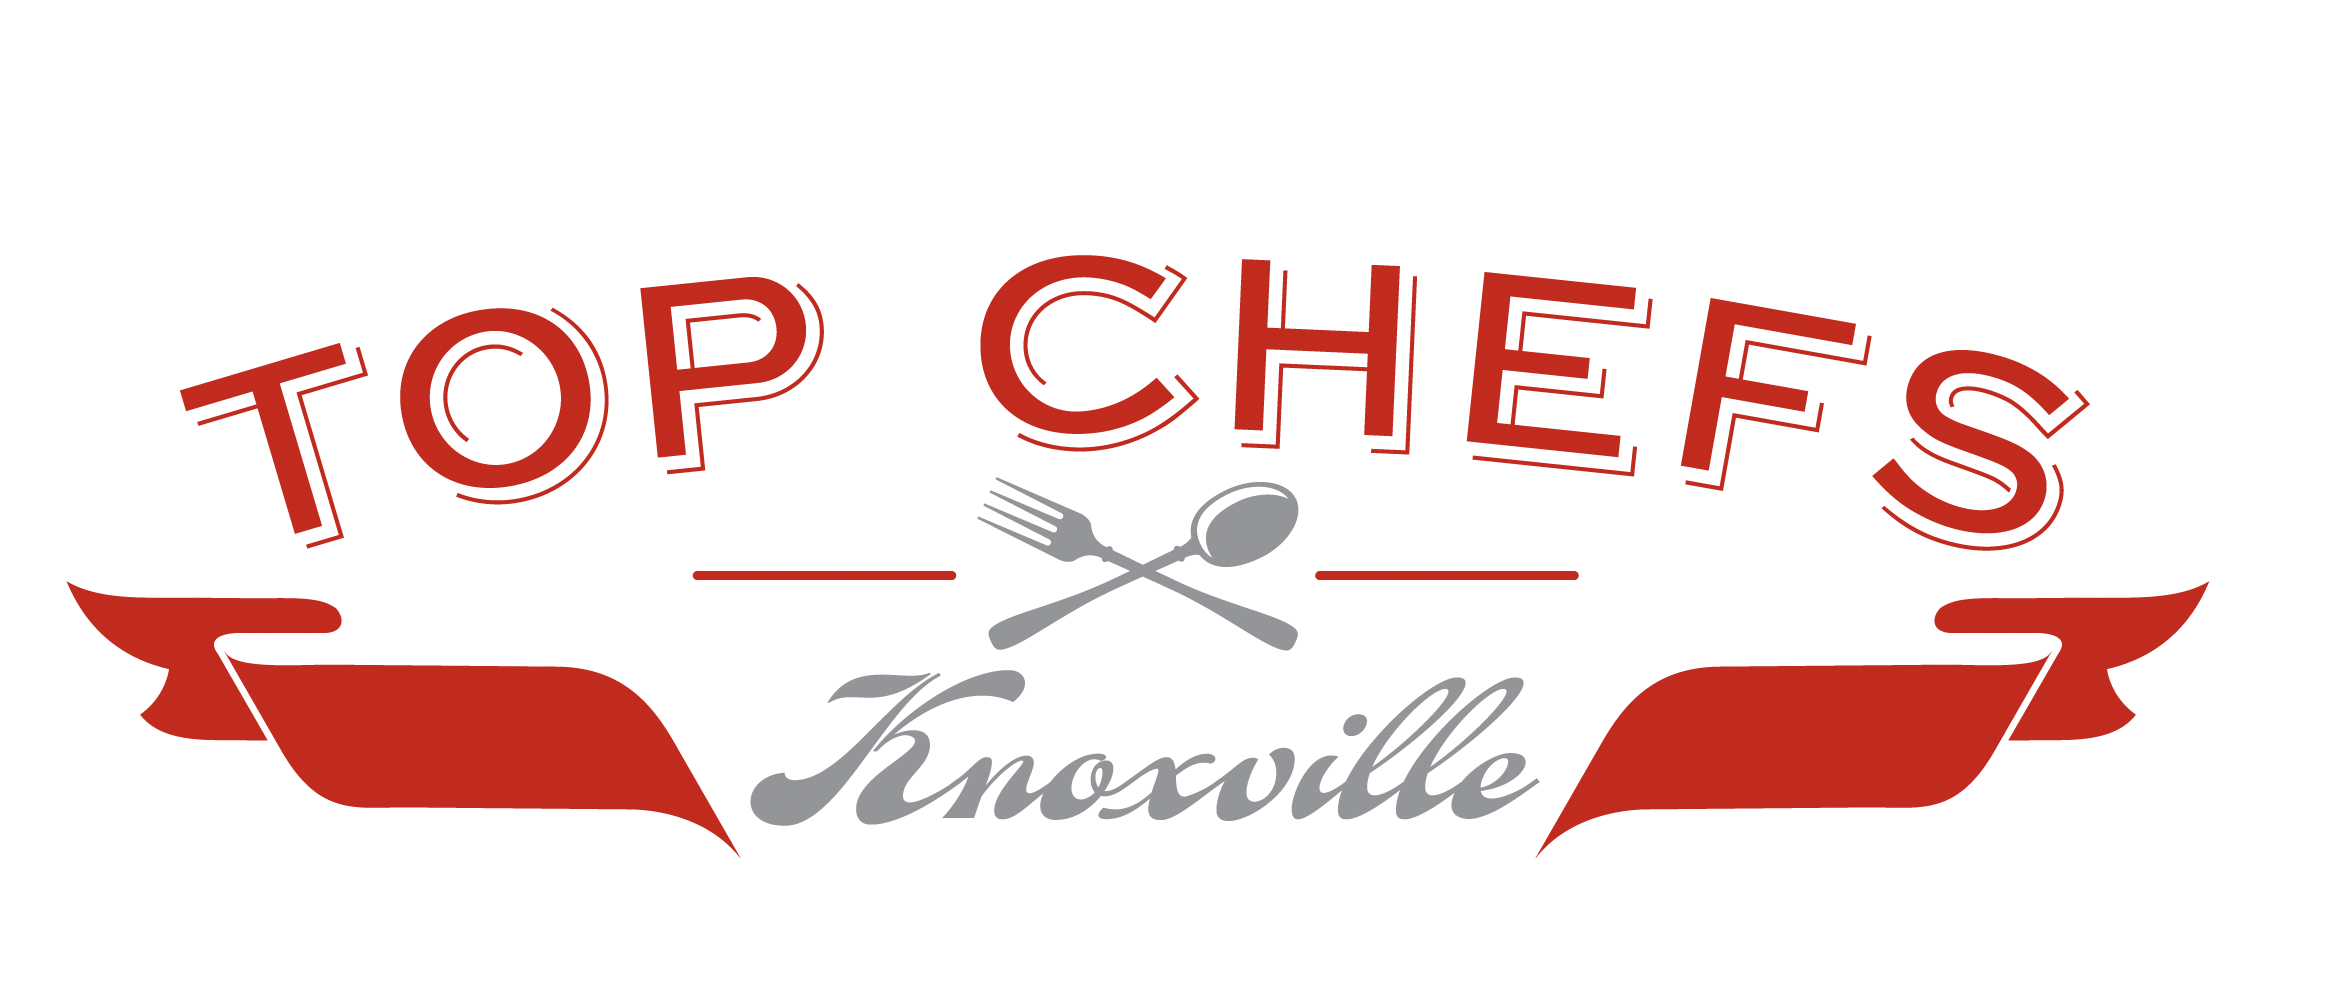 Top Chefs Knoxville